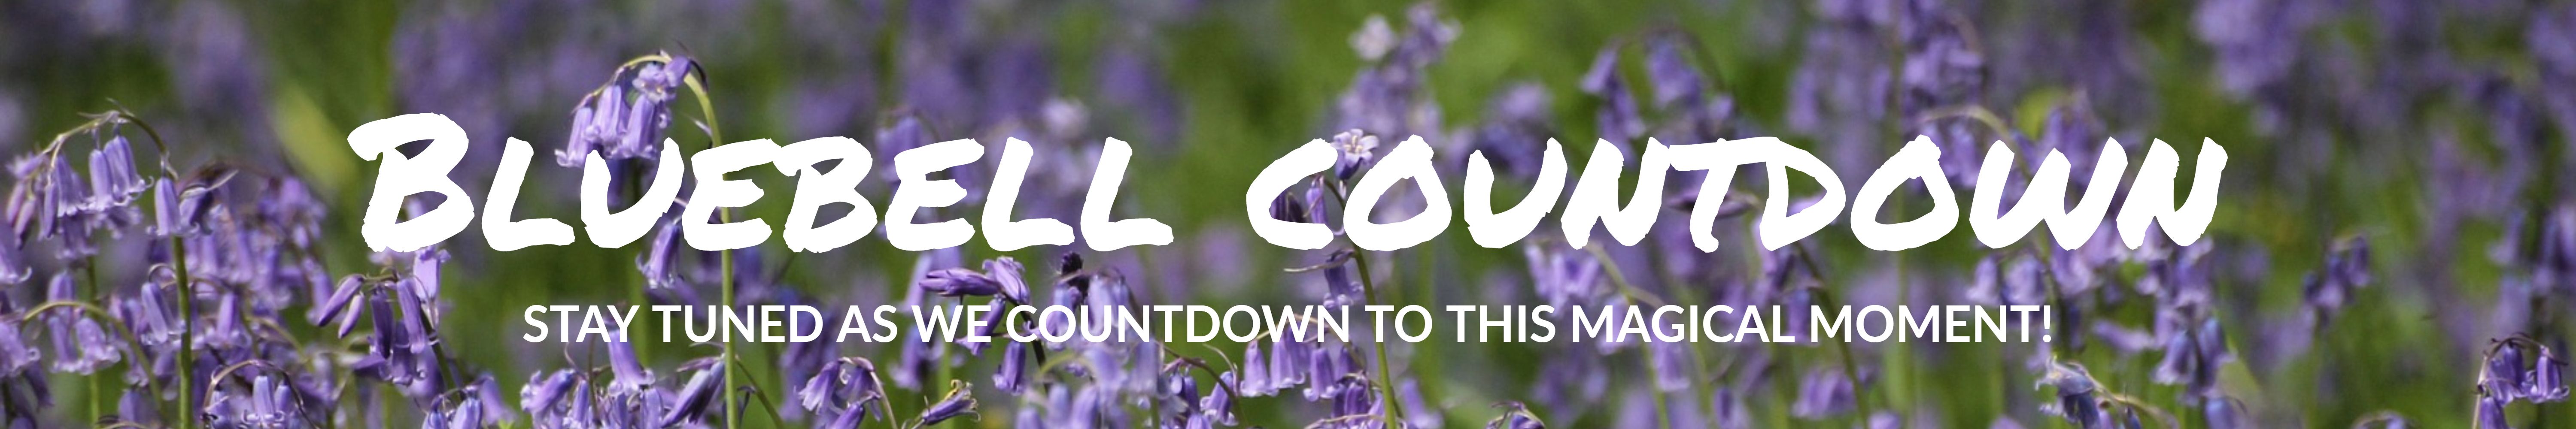 bluebell countdown